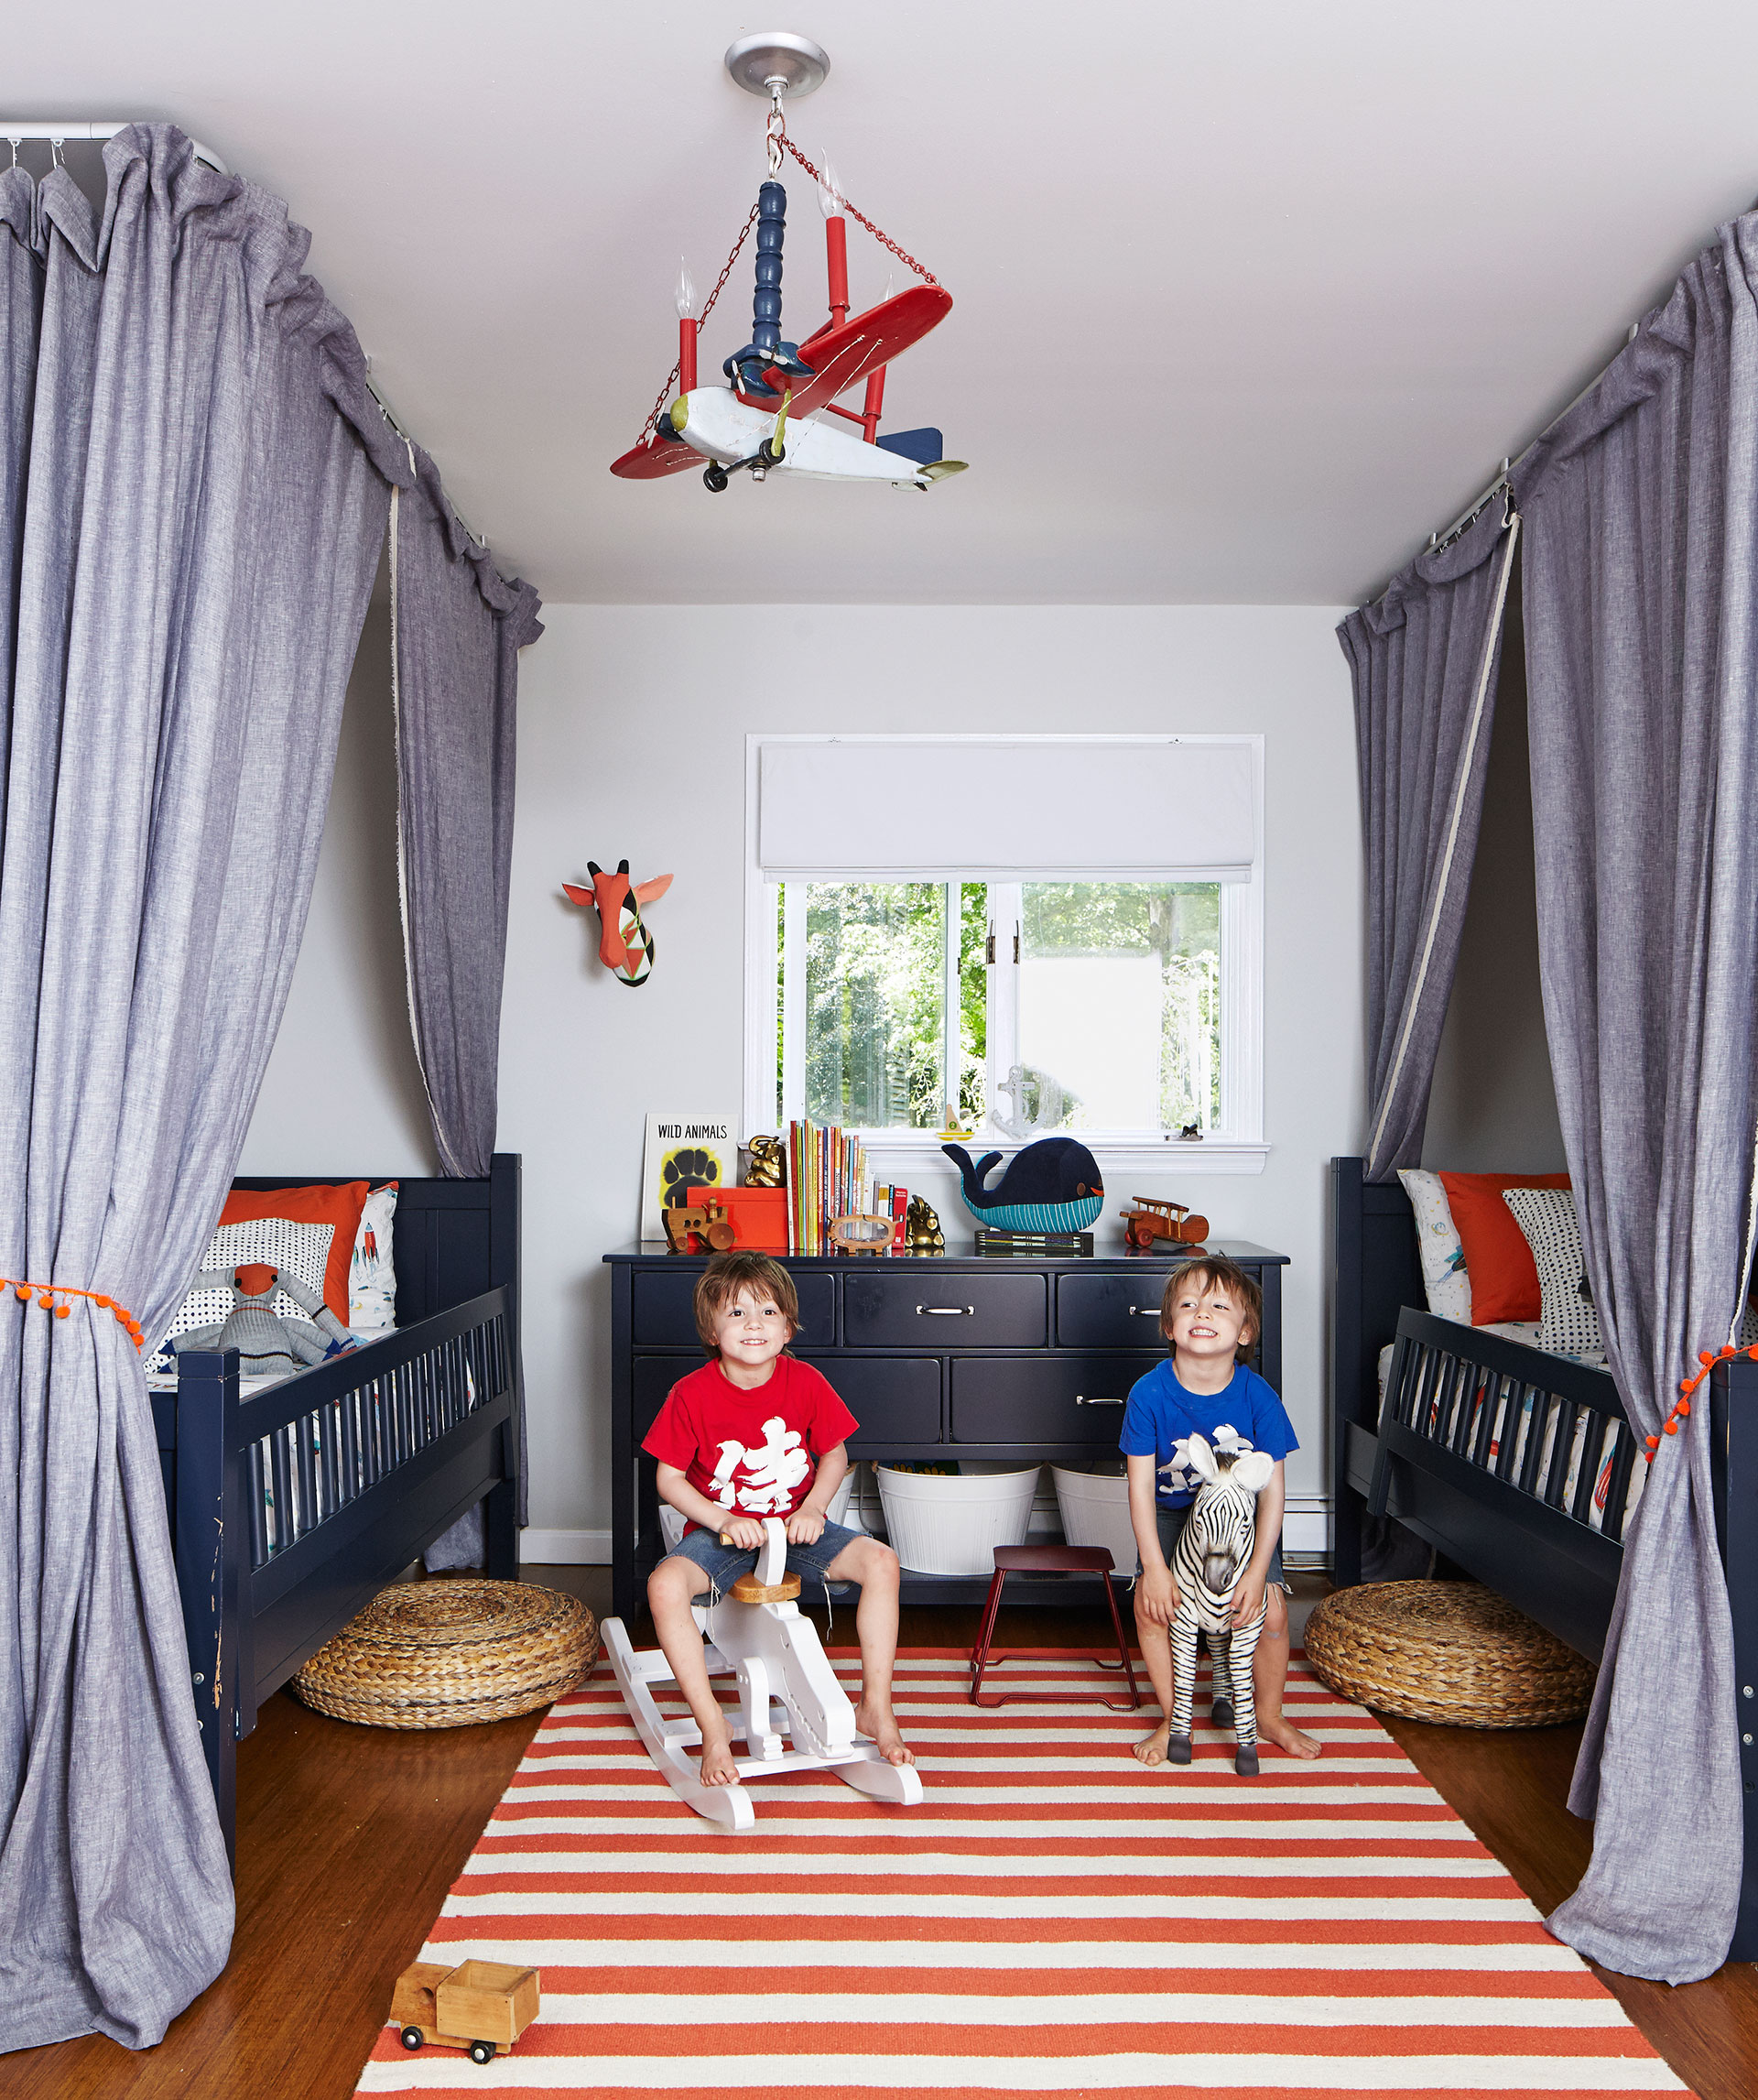 Kids Room Decor Ideas Bedroom Design And Decorating For Kids - Decor for kids room